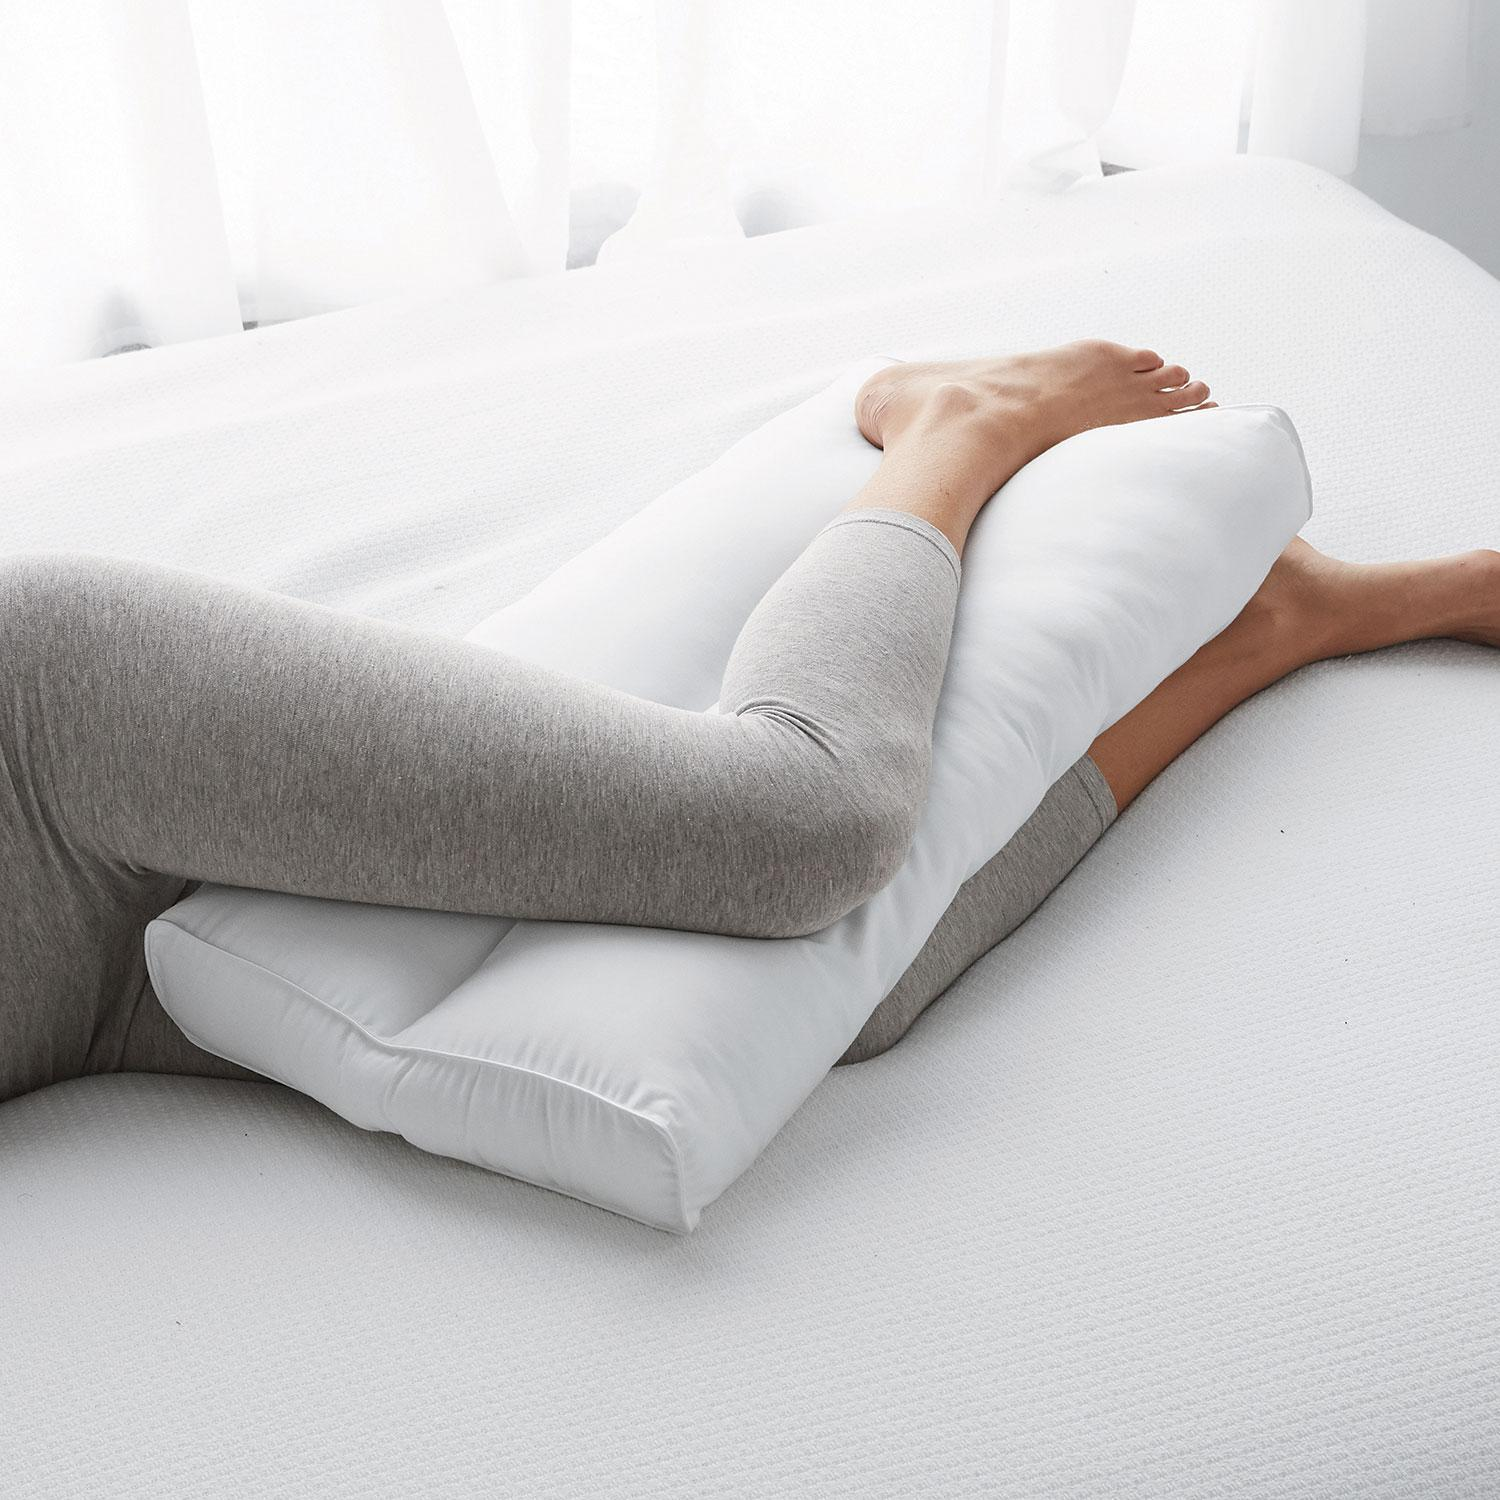 Posture Pillows  Knee  Leg Pillow  The Company Store